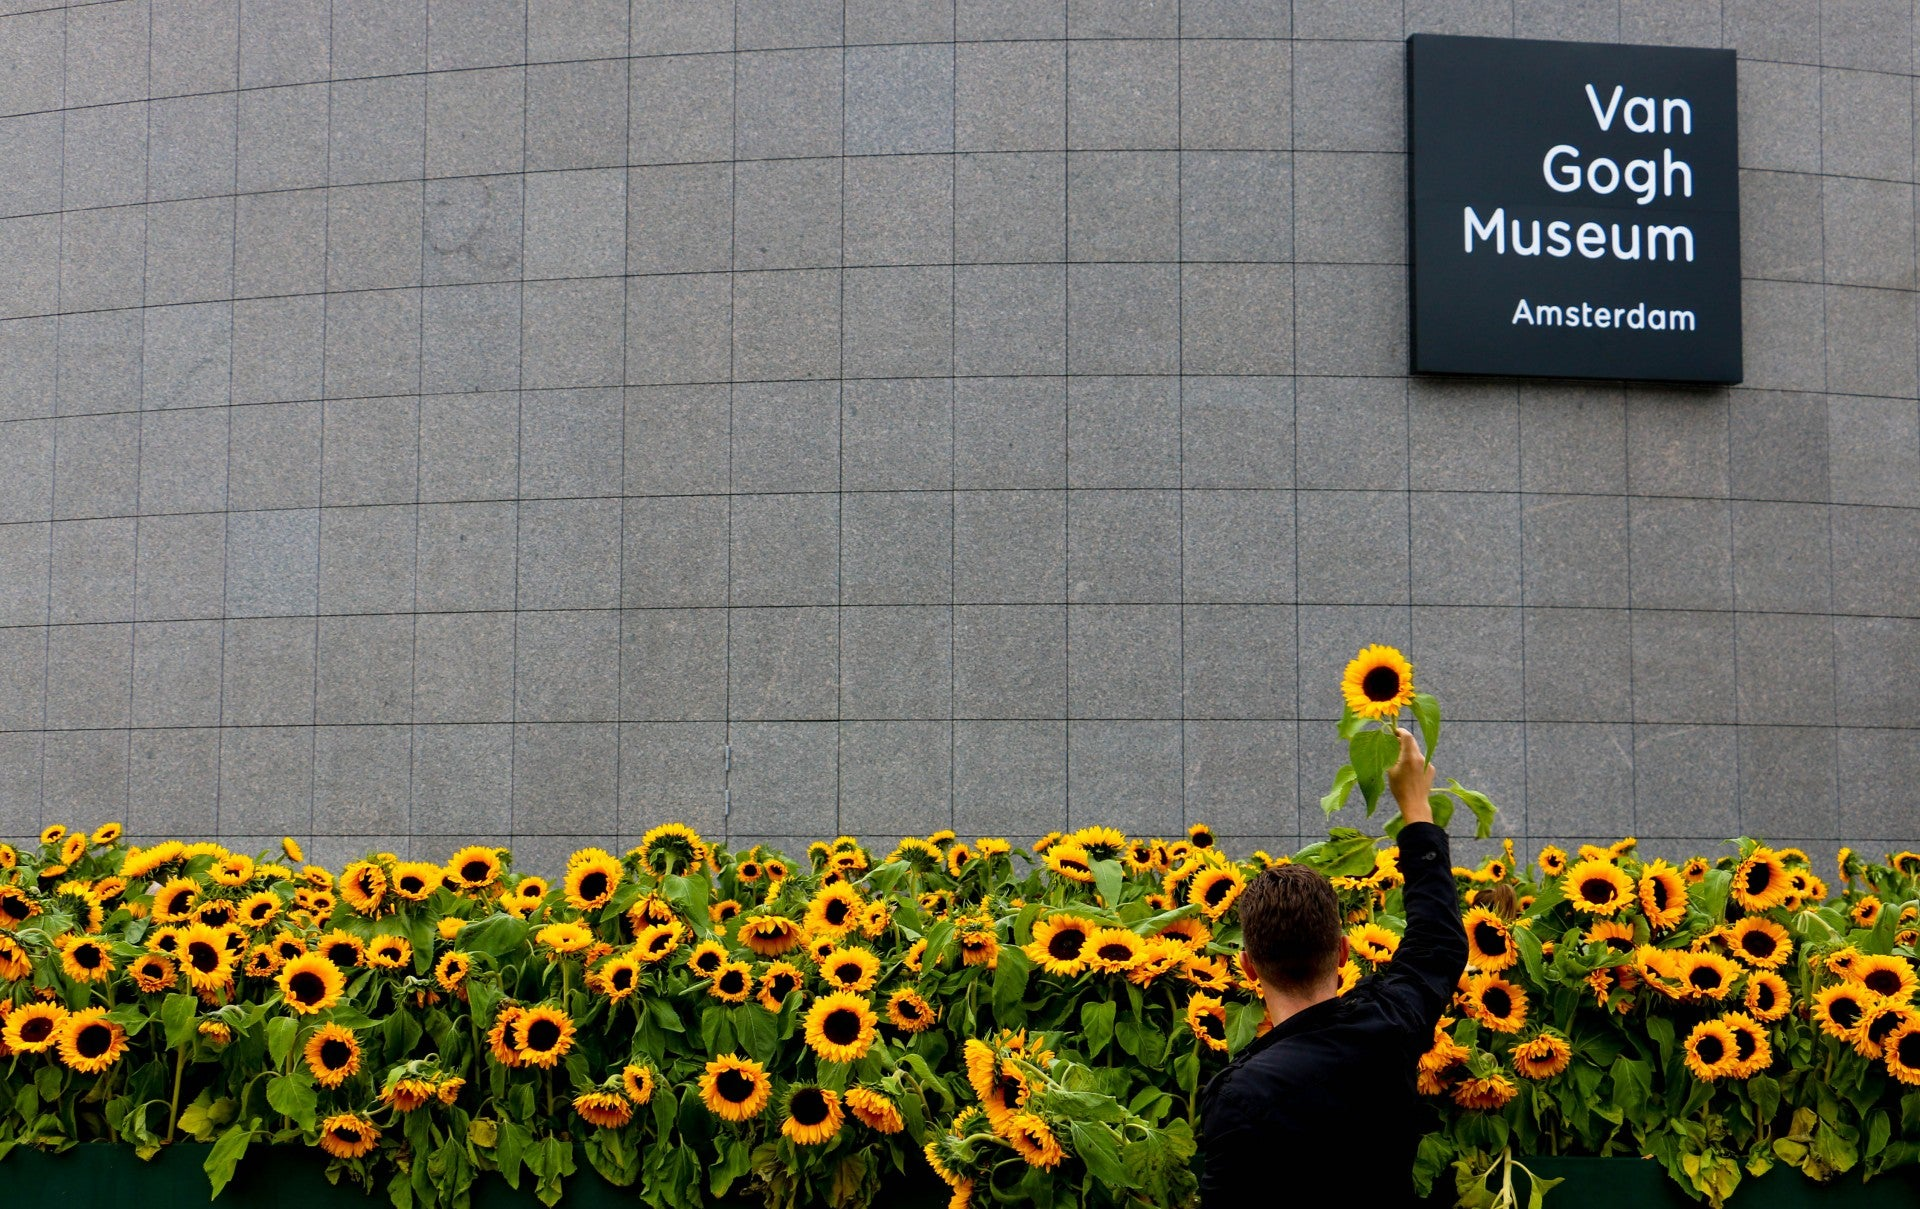 Sunflowers outside the Van Gogh Museum